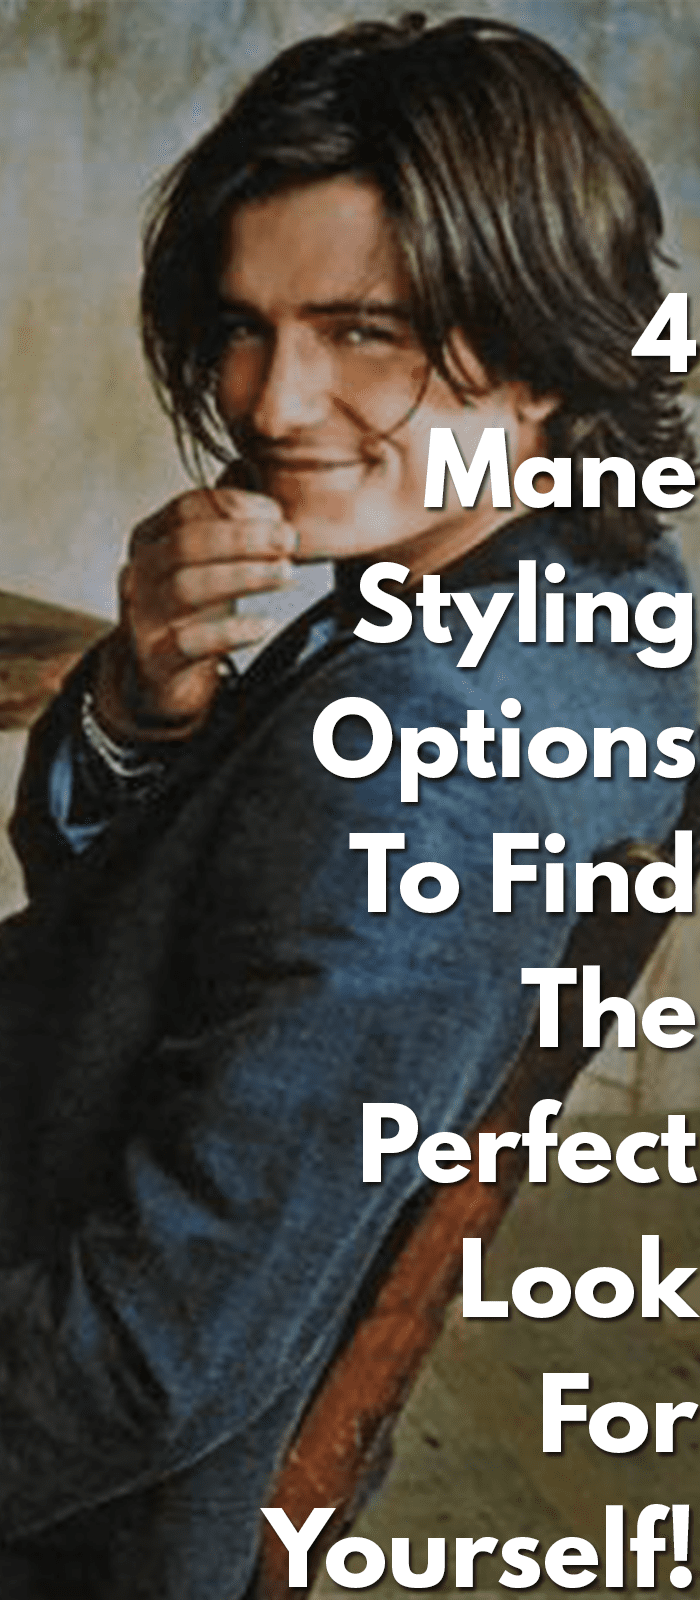 4-Mane-Styling-Options-To-Find-The-Perfect-Look-For-Yourself!